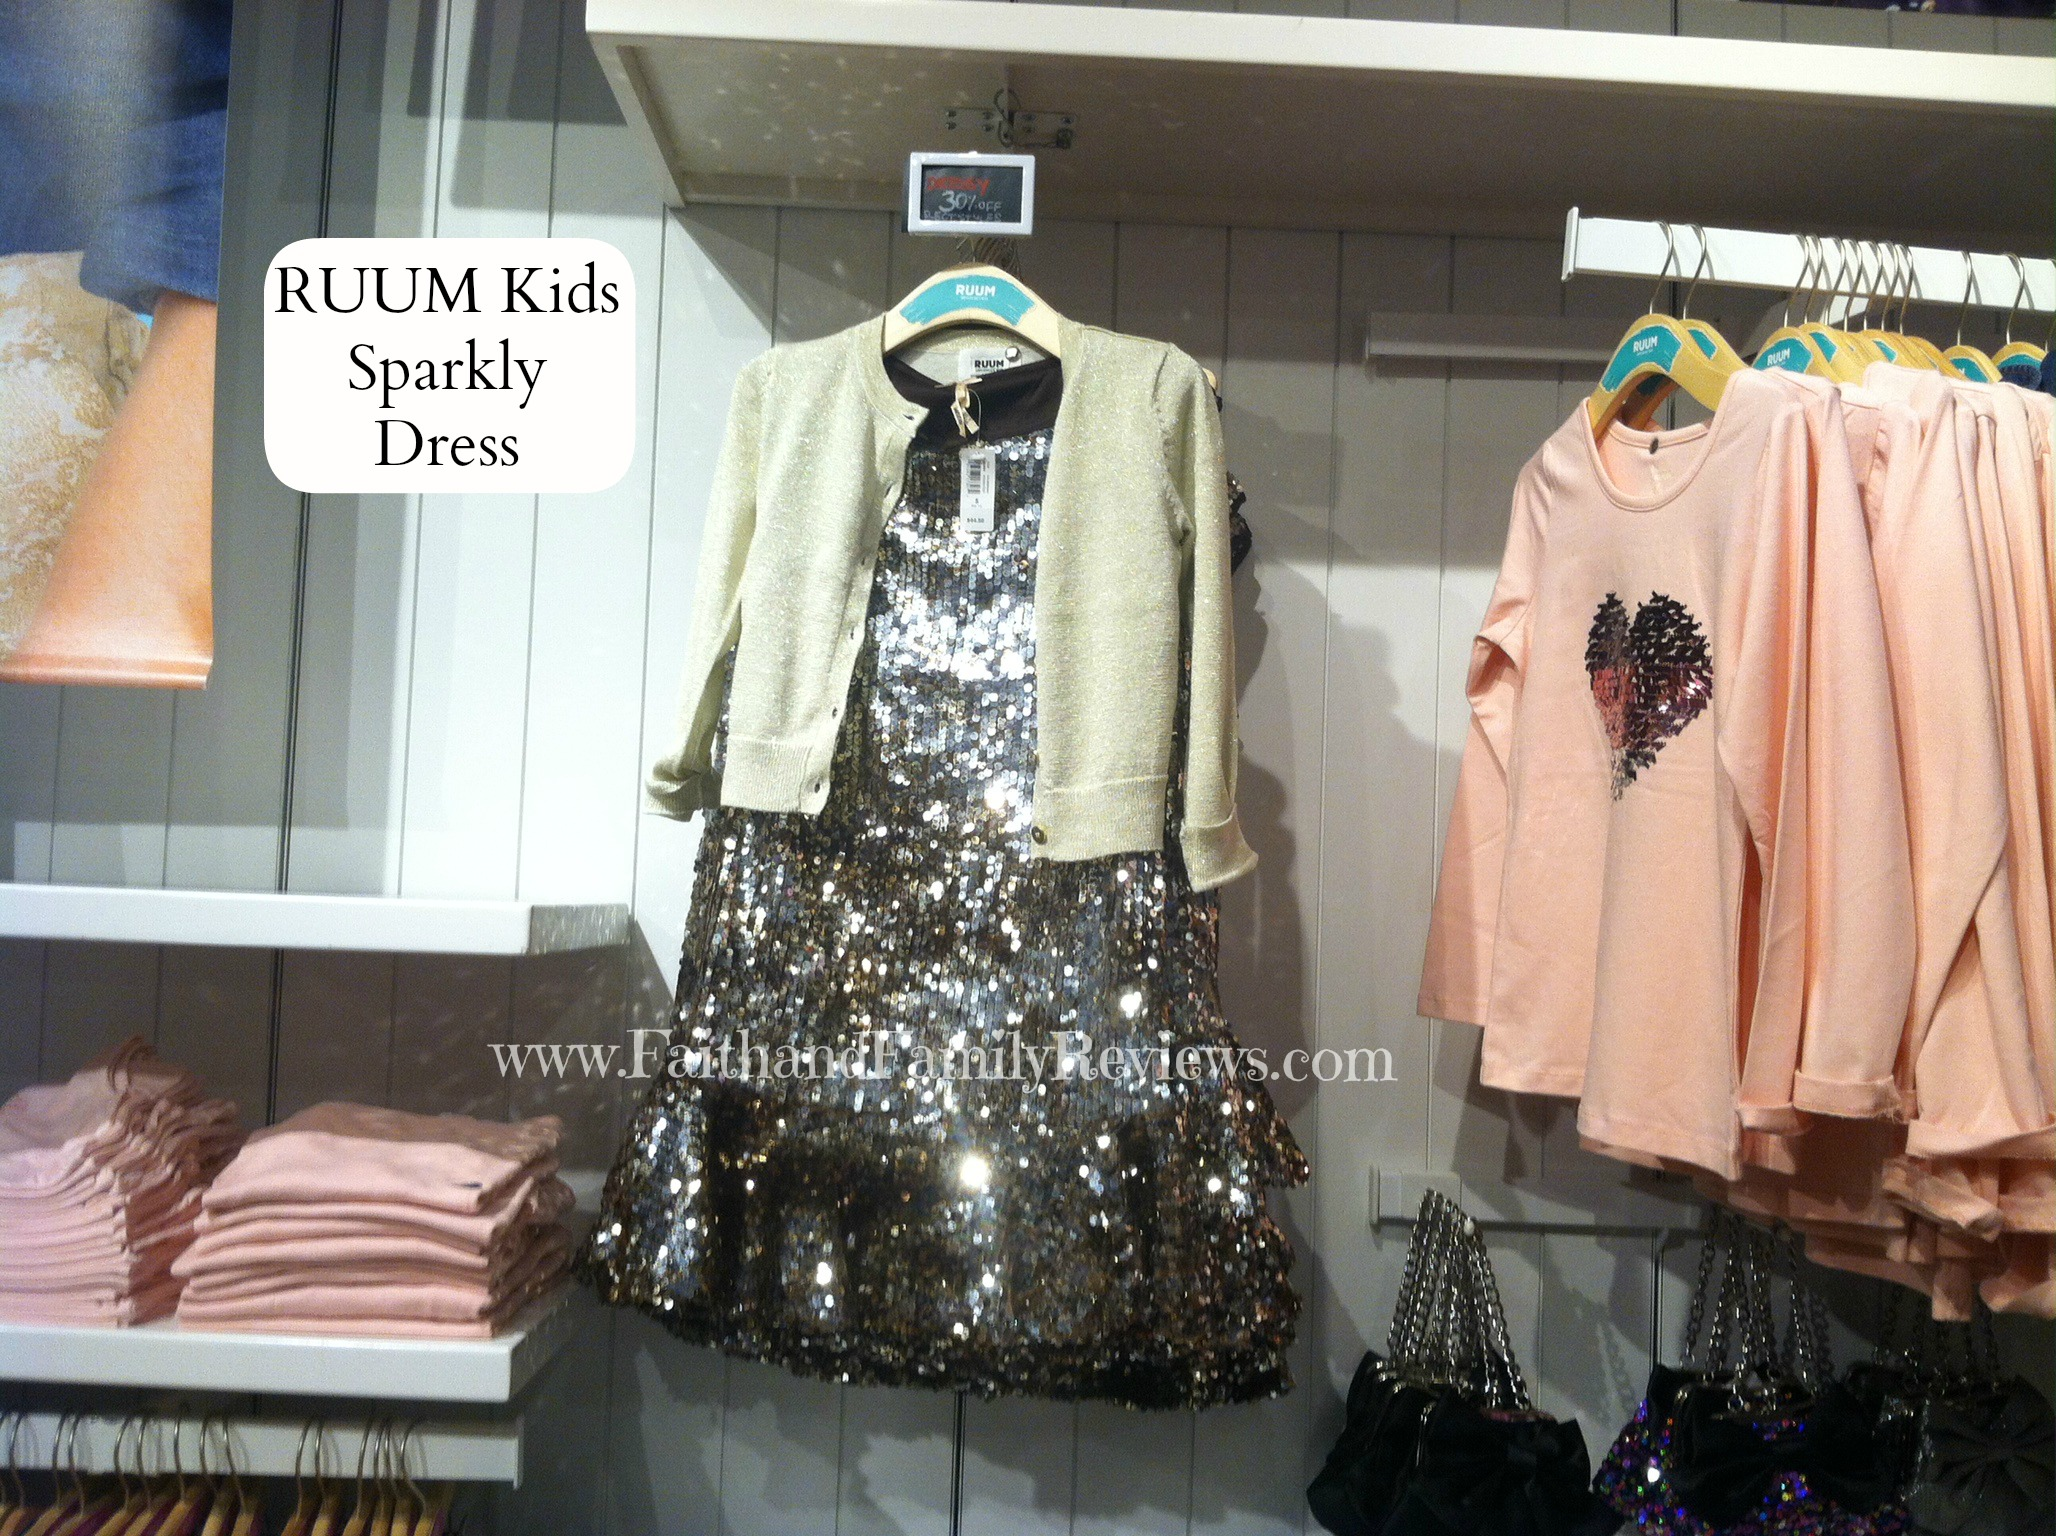 FFR RUUM Kids Sparkly Dress